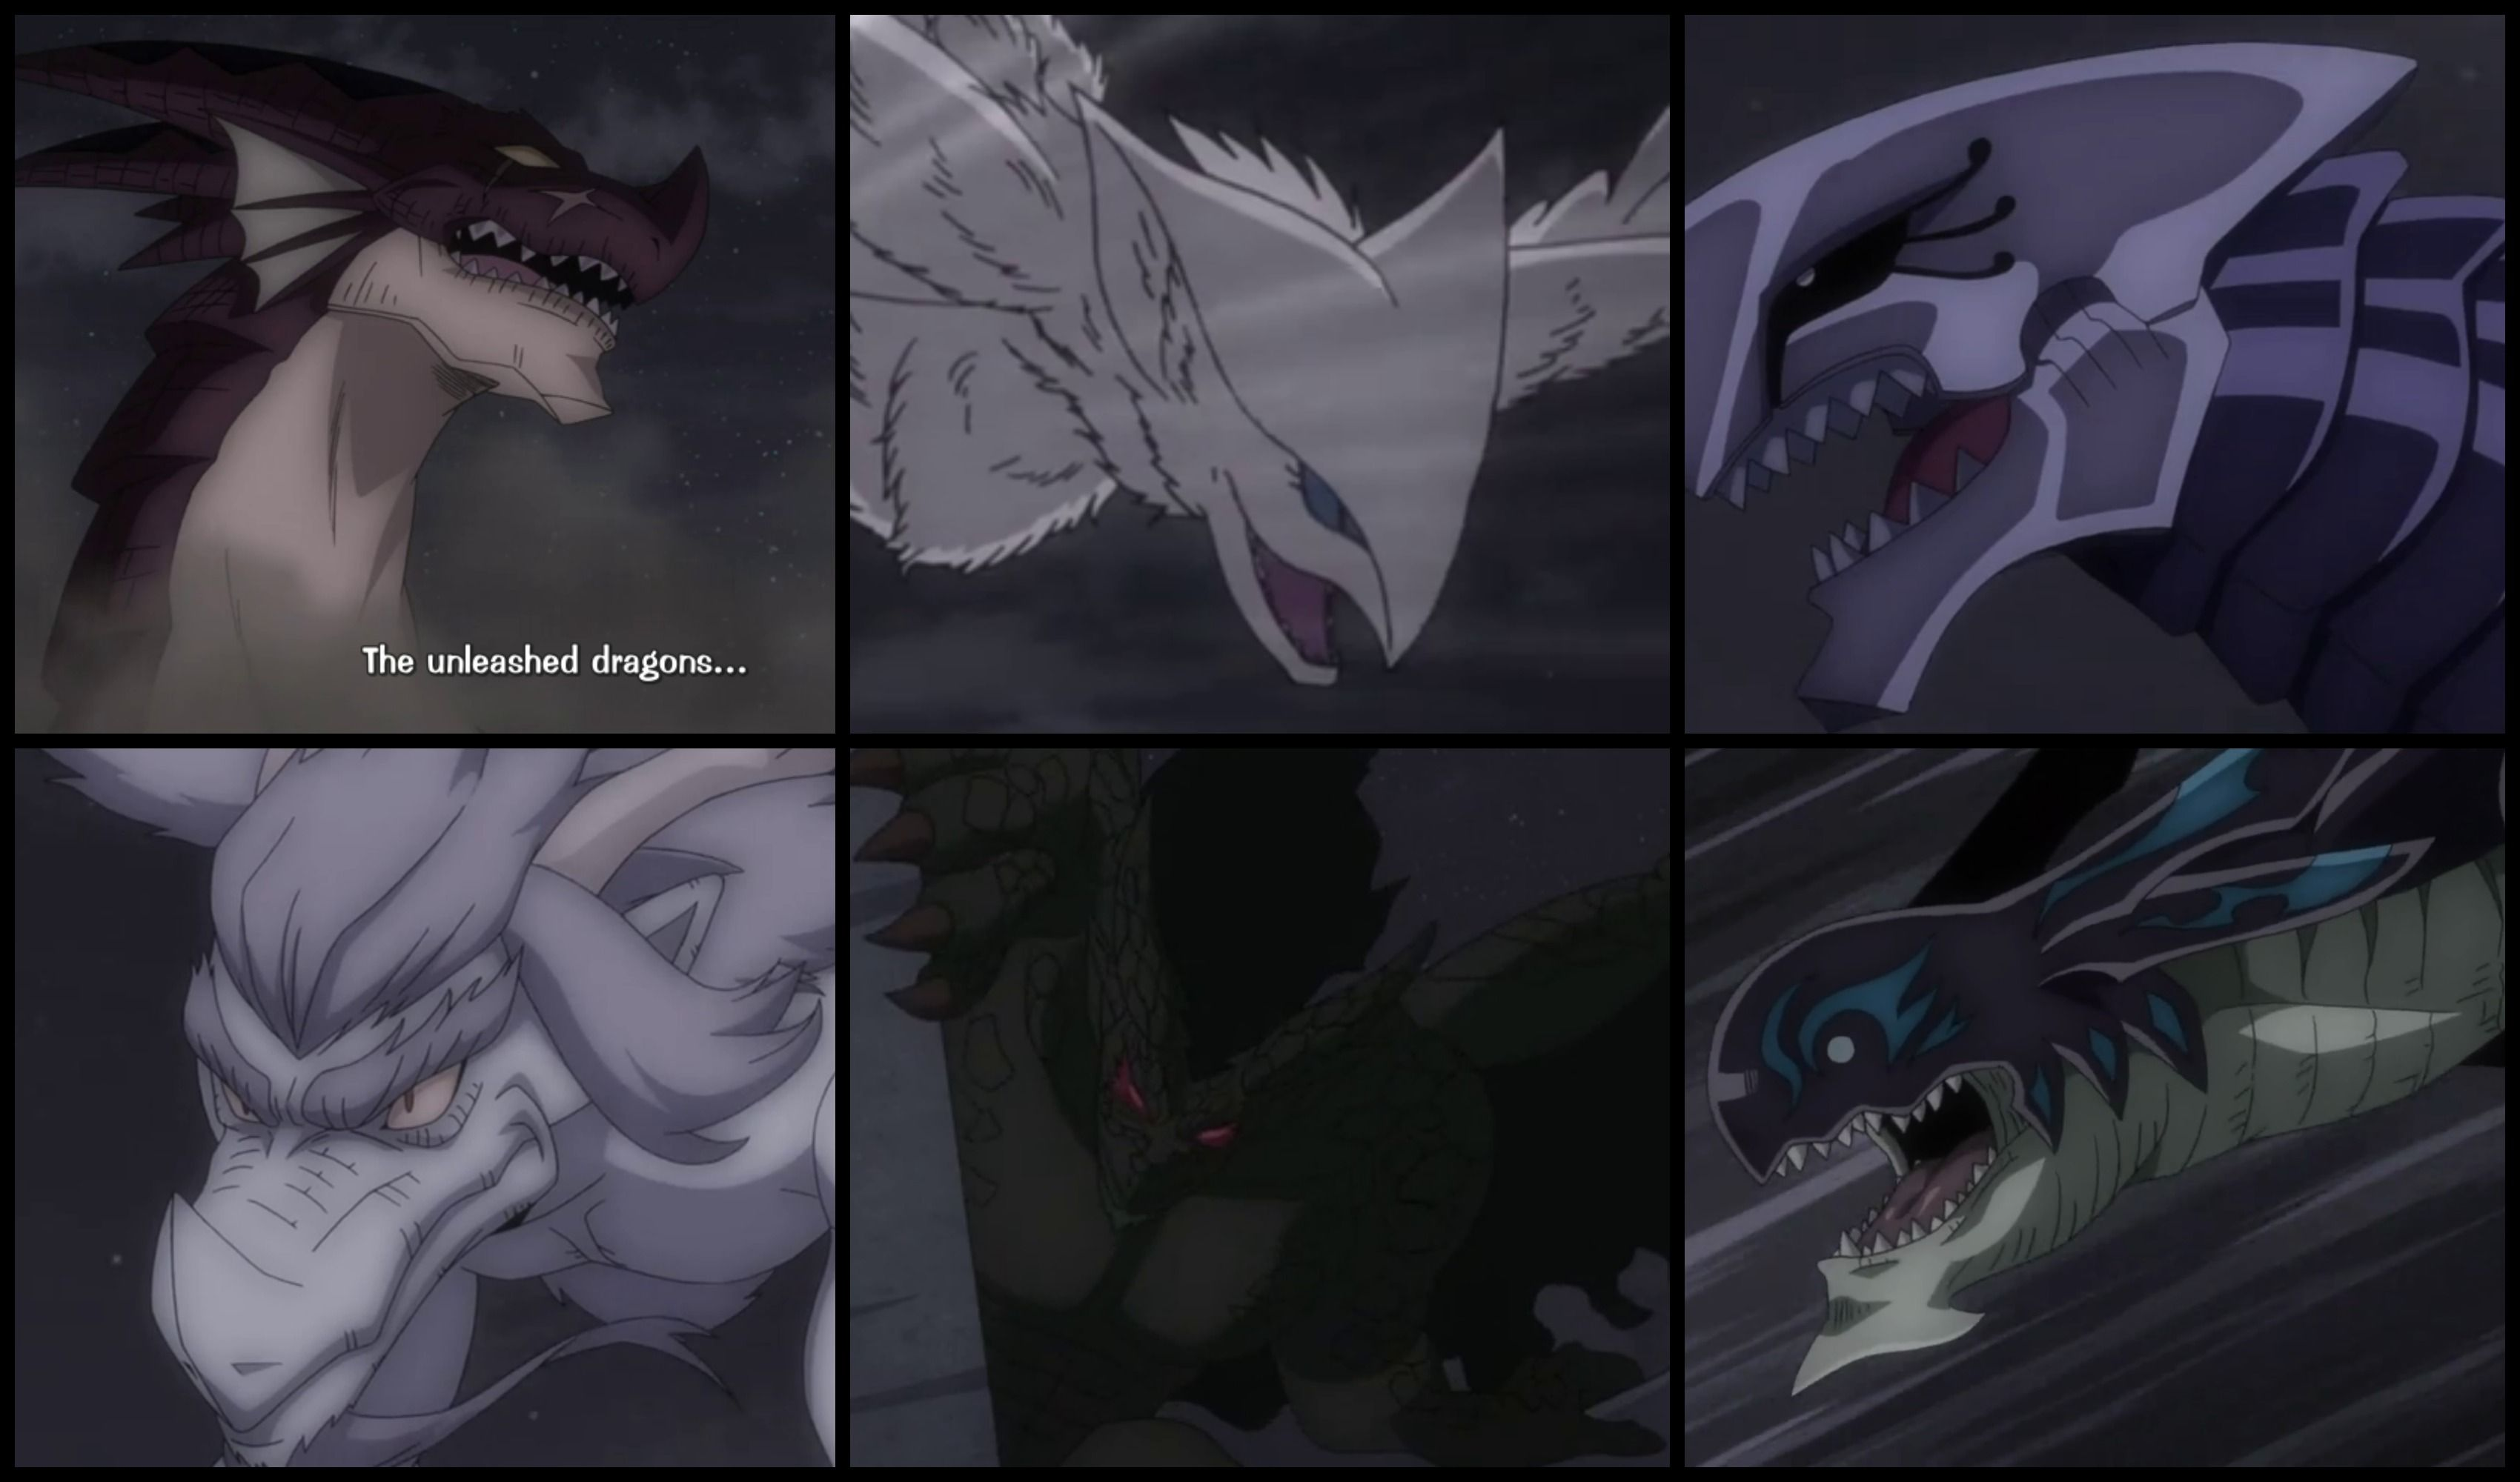 The Dragons: Igneel, Grandine, Metallicana, Weisslogia ...